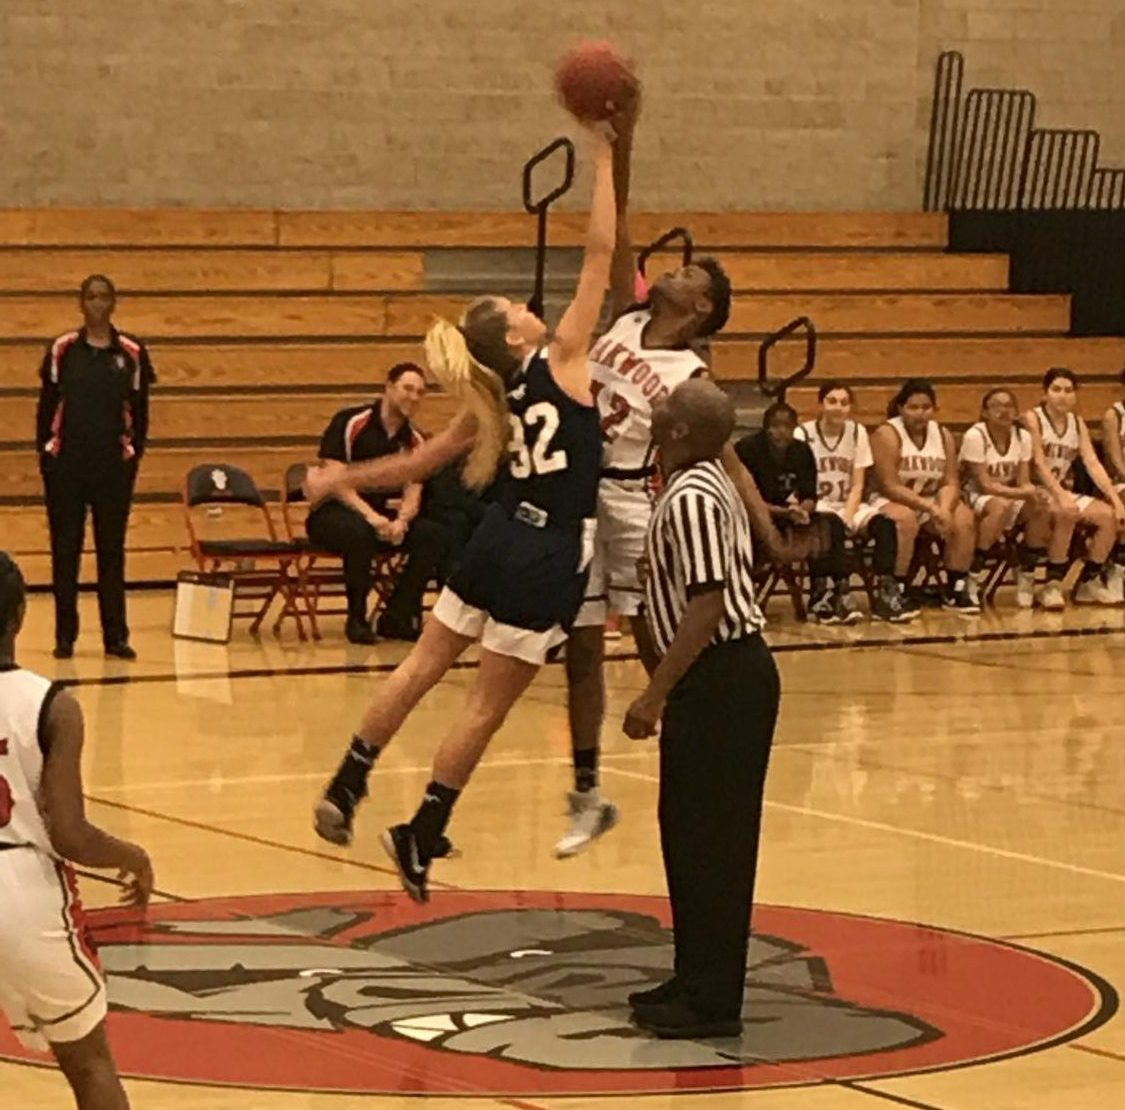 The SDA girls basketball team competes with Oakland to get the jump ball.